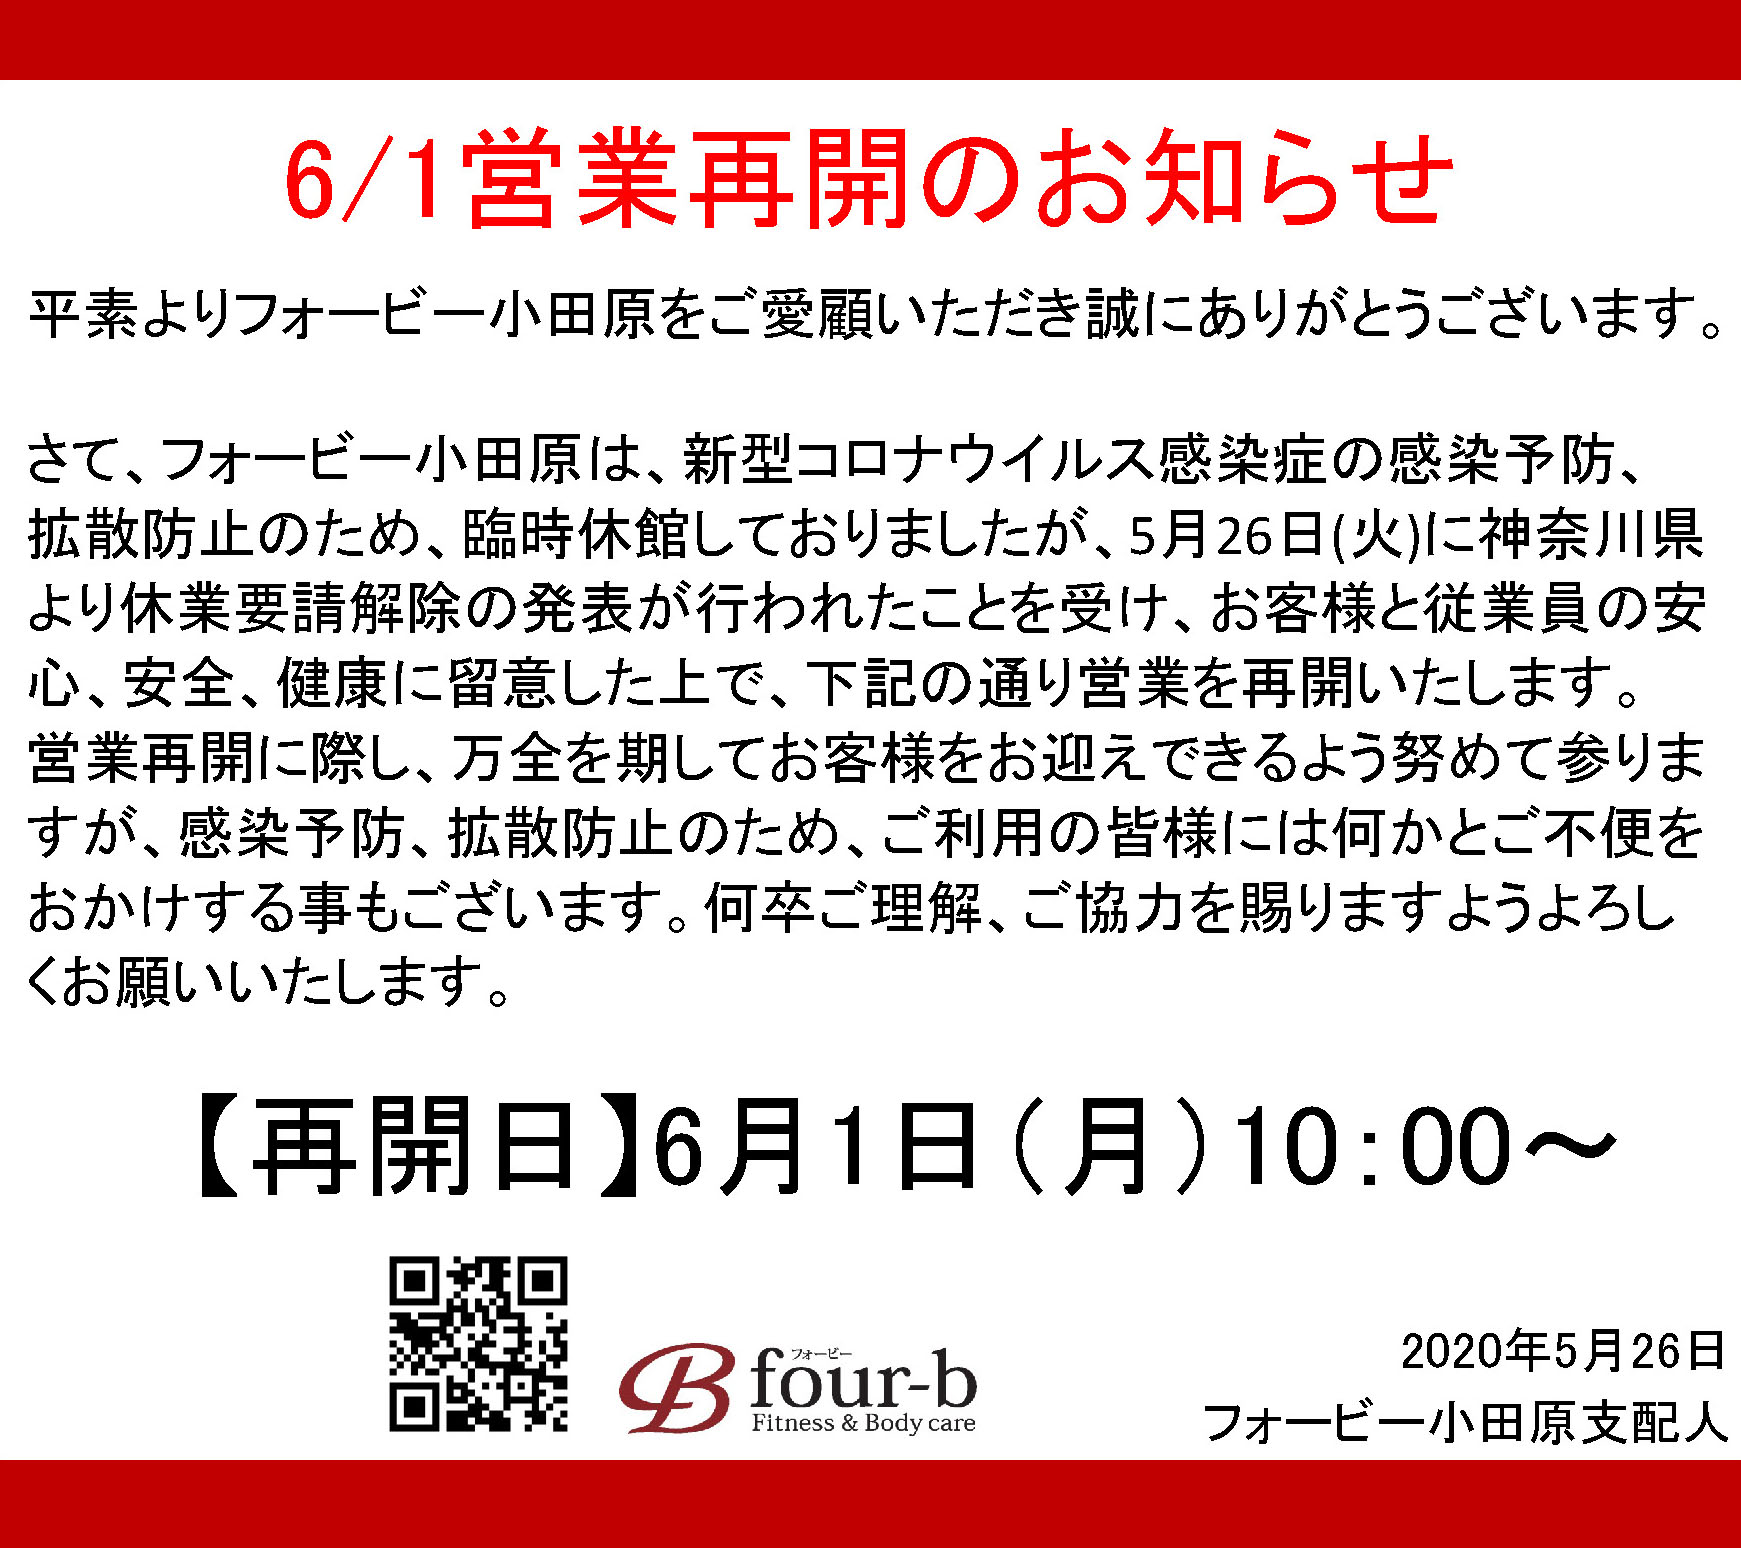 キャンペーン実施中4月15日まで